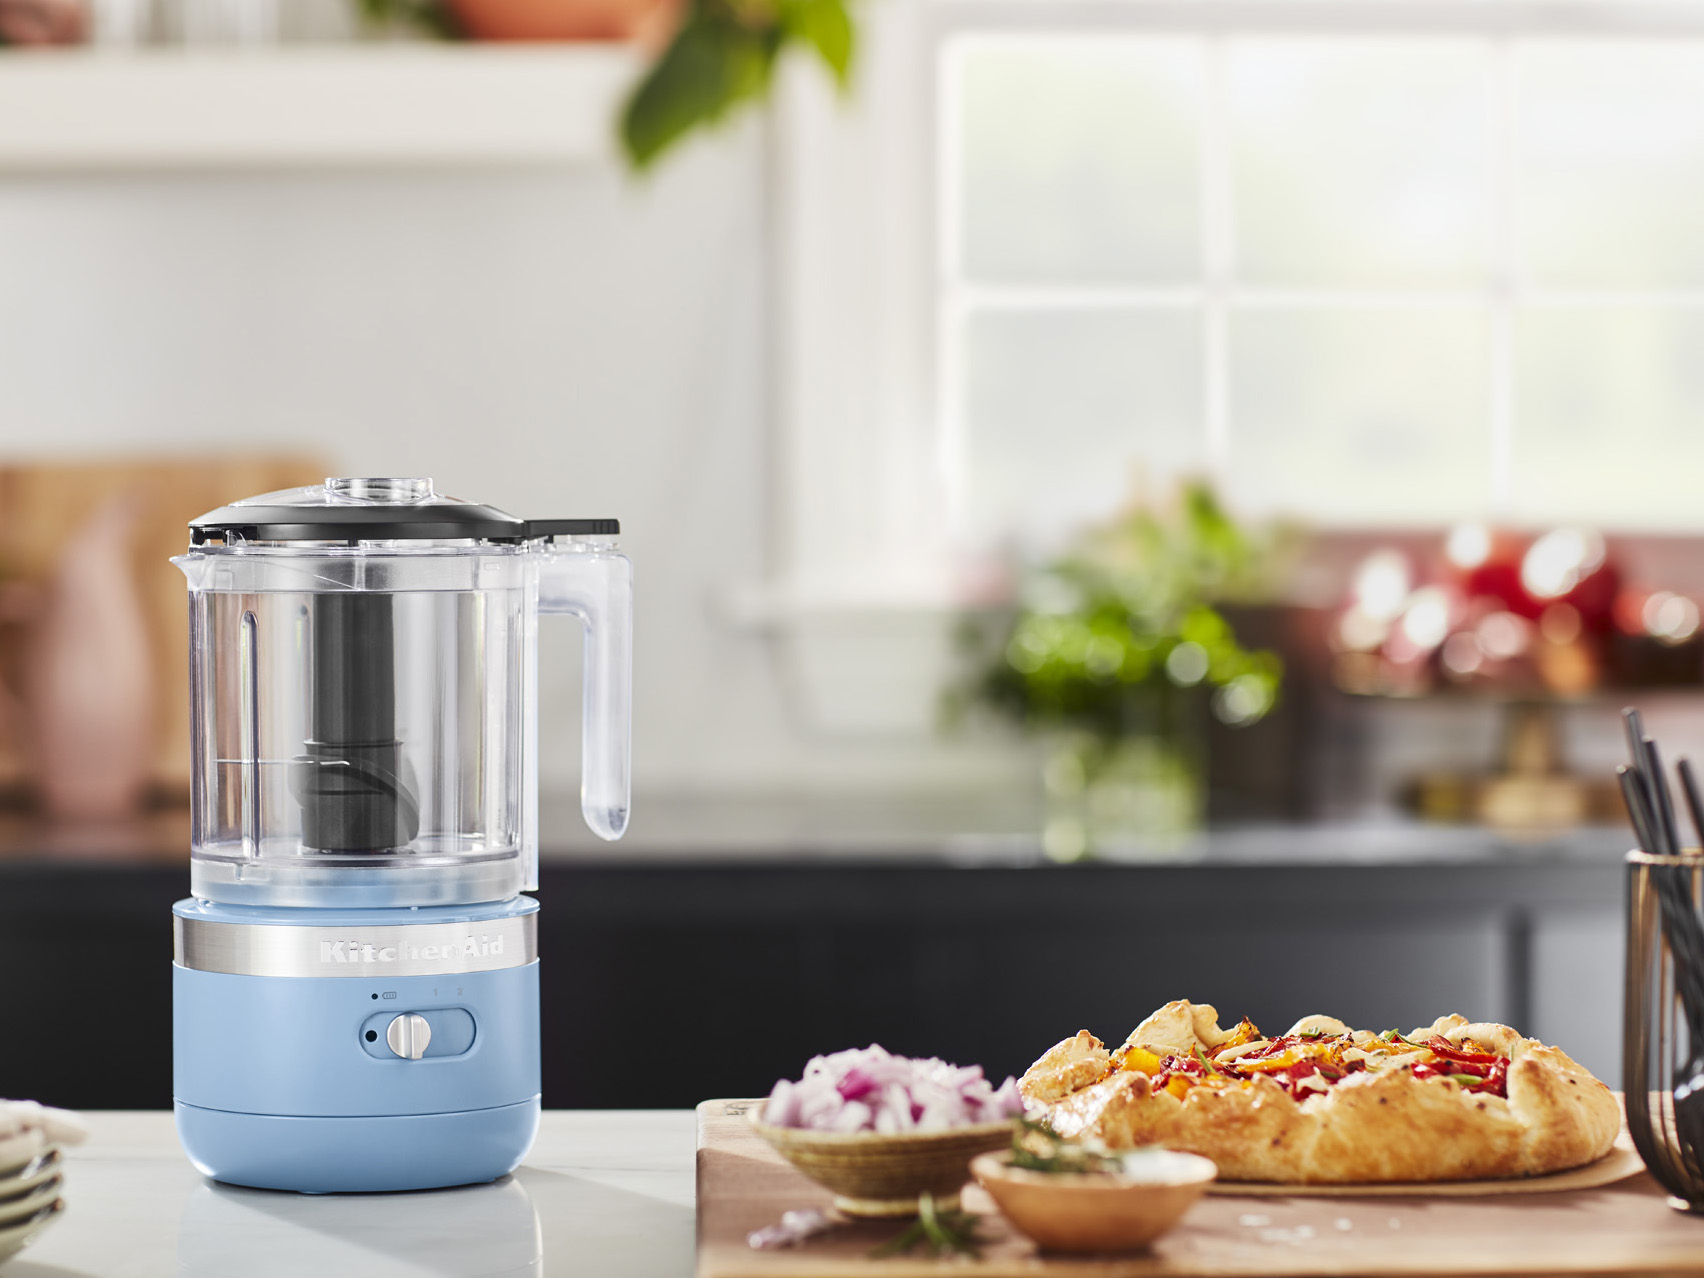 kitchenaid cordless collection chopper on counter